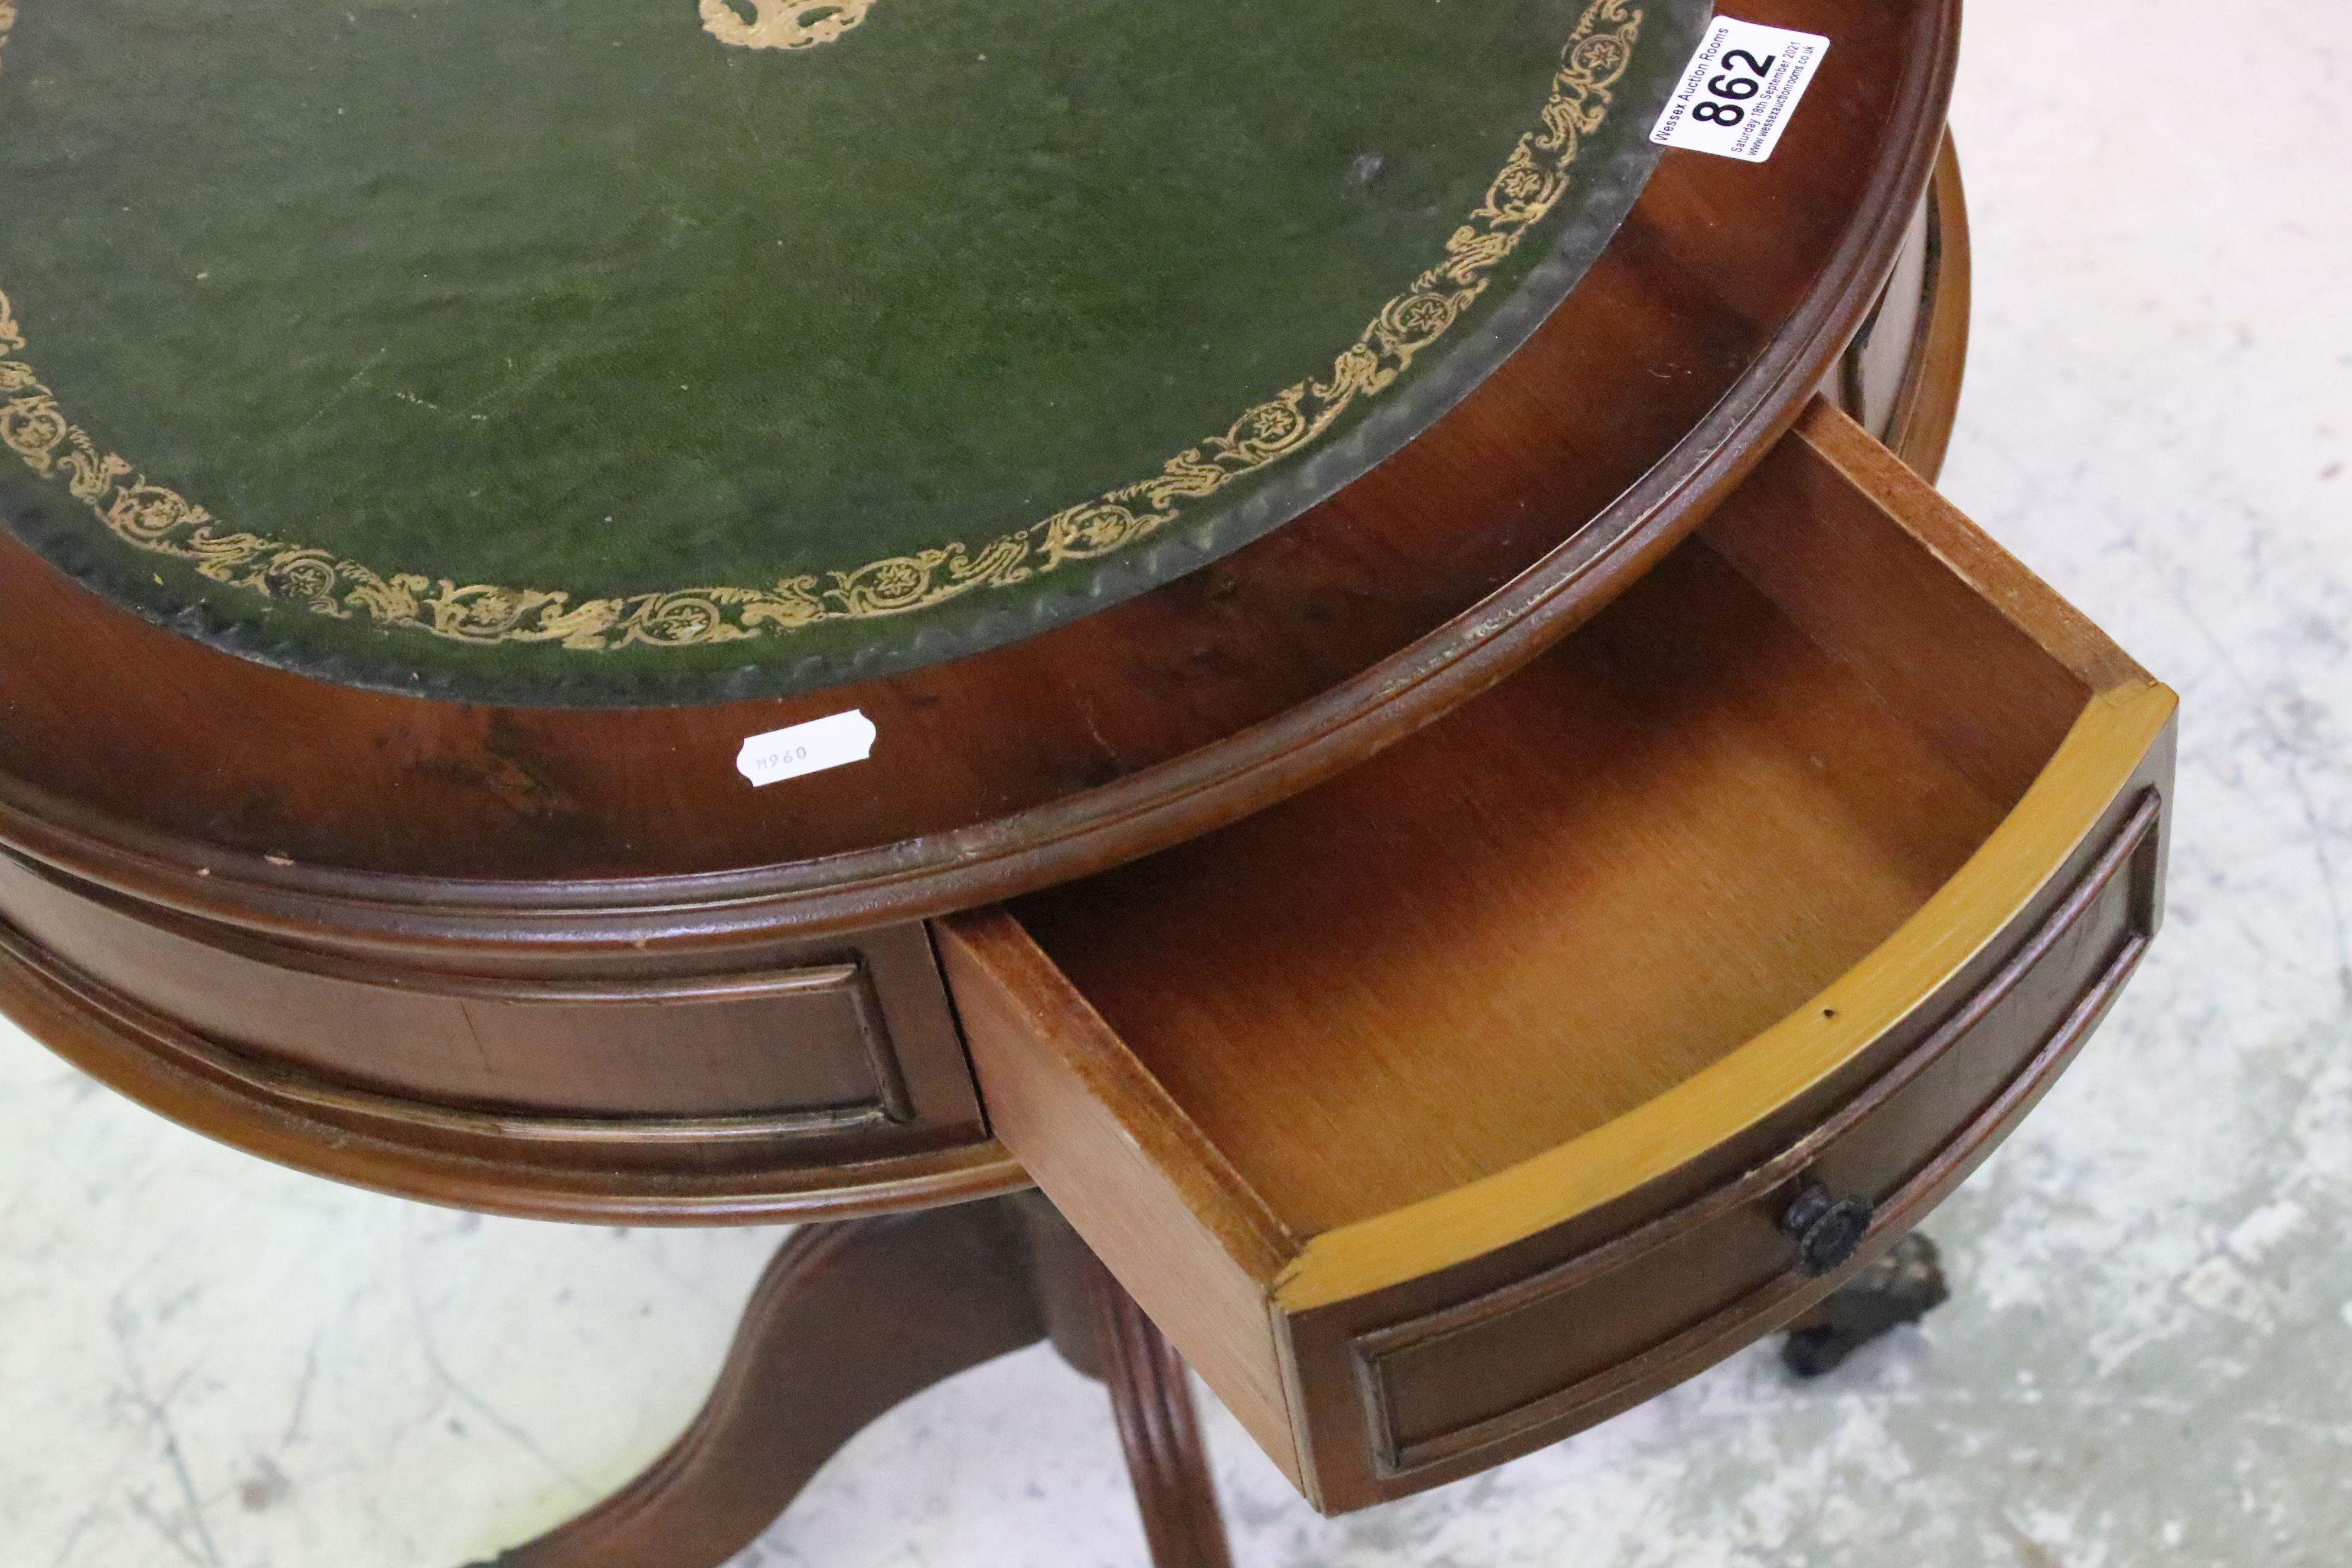 Reproduction Drum Table with Green Leather Inset Top, 49cms wide x 62cms high - Image 2 of 4